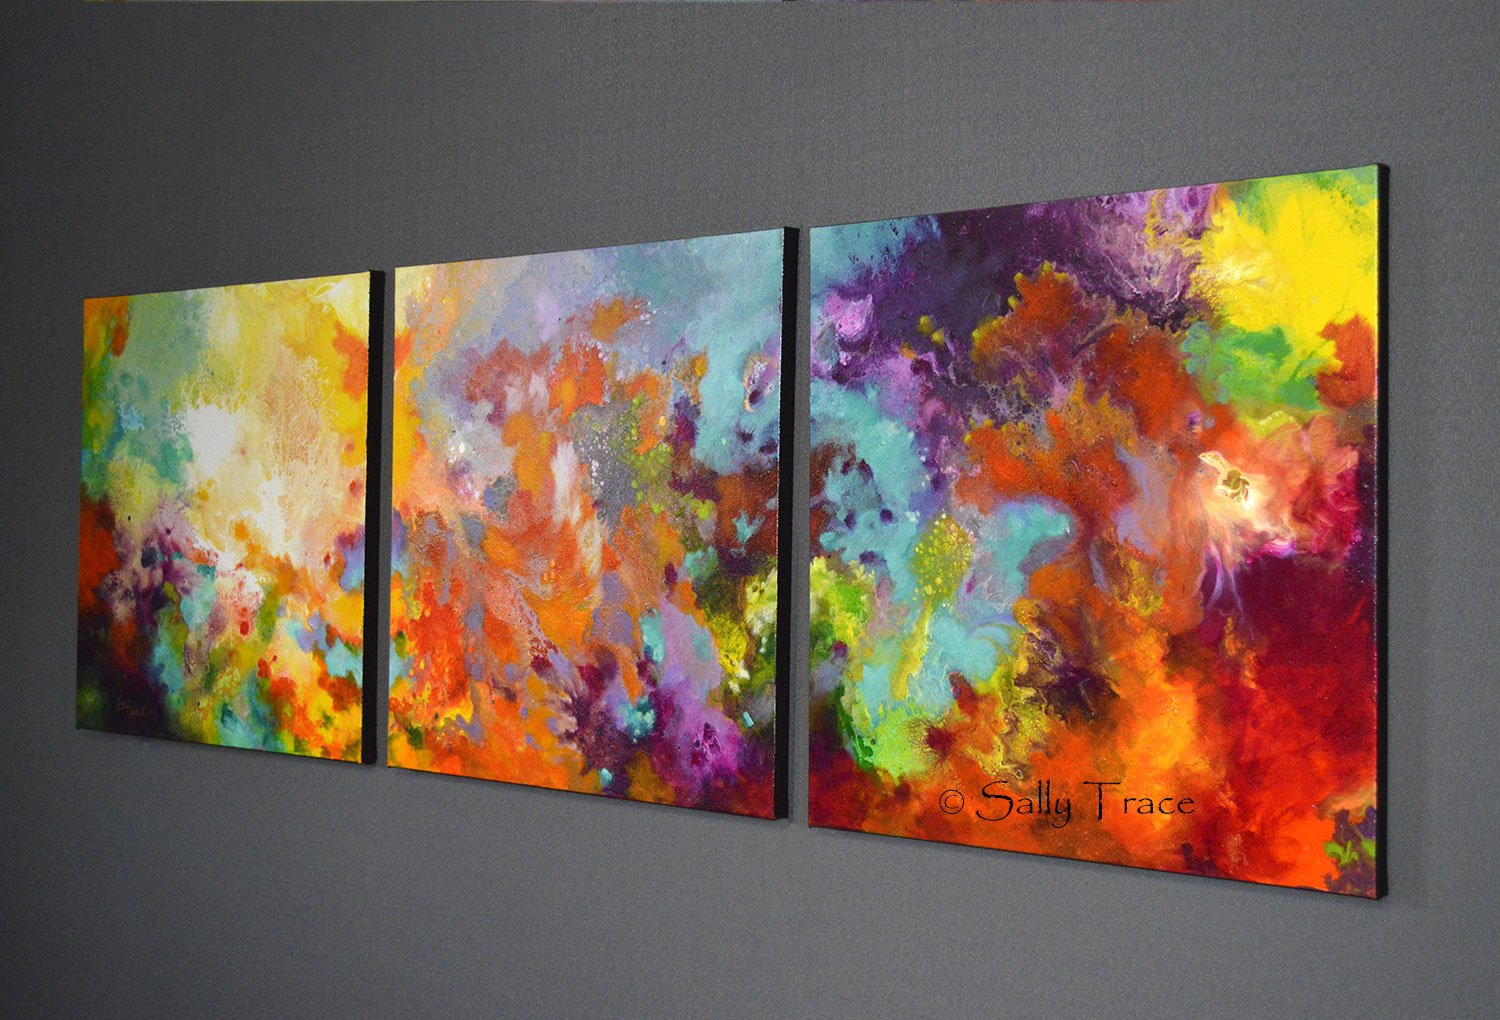 Momentum, original abstract triptych paintings. Three 20x20 inch paintings, acrylic on canvas. A richly detailed fluid painting with light texture, side view